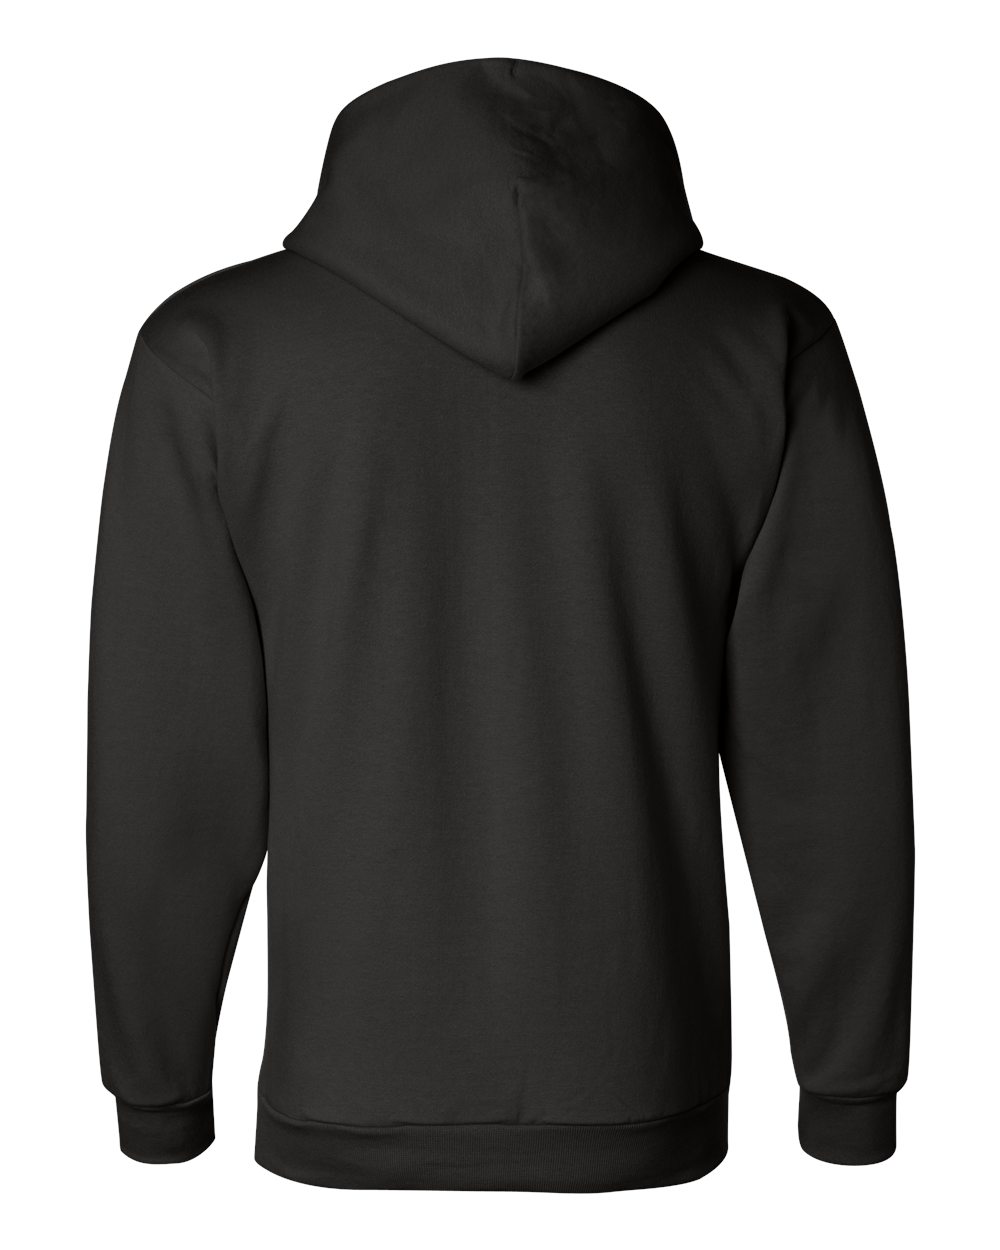 Champion-Mens-Double-Dry-Eco-Hooded-Sweatshirt-Hoodie-Pullover-S700-up-to-3XL miniature 7